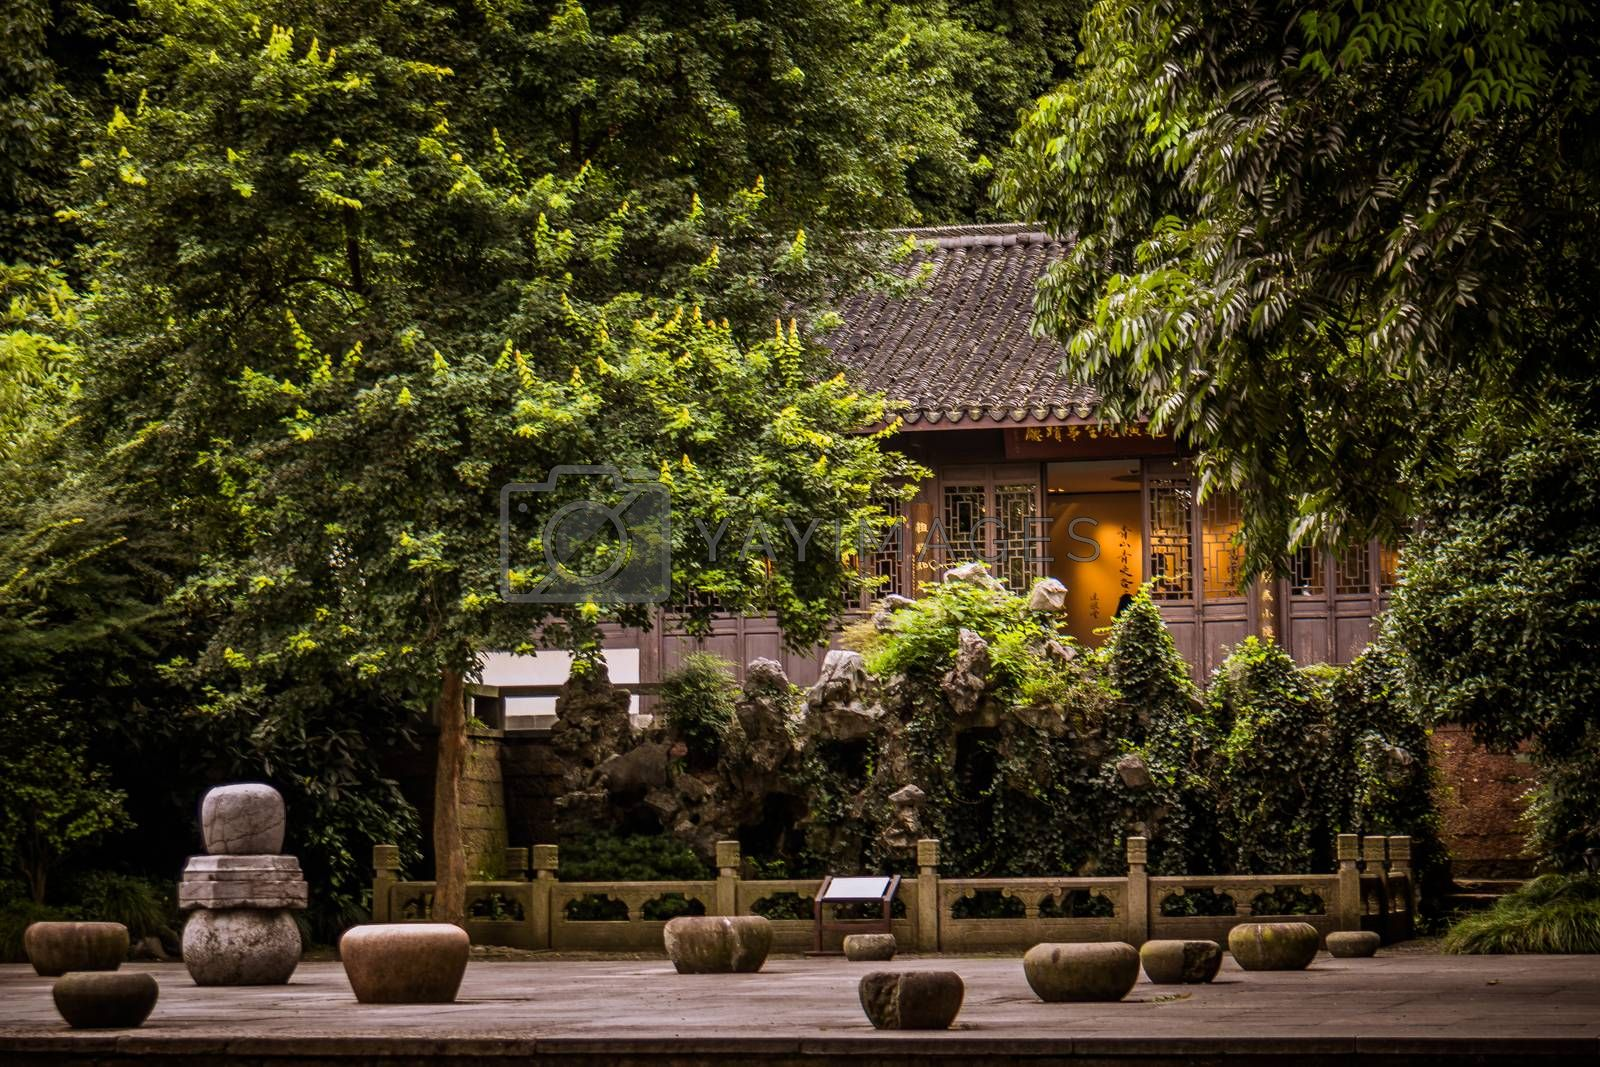 Royalty free image of Hangzhou city by bamboome